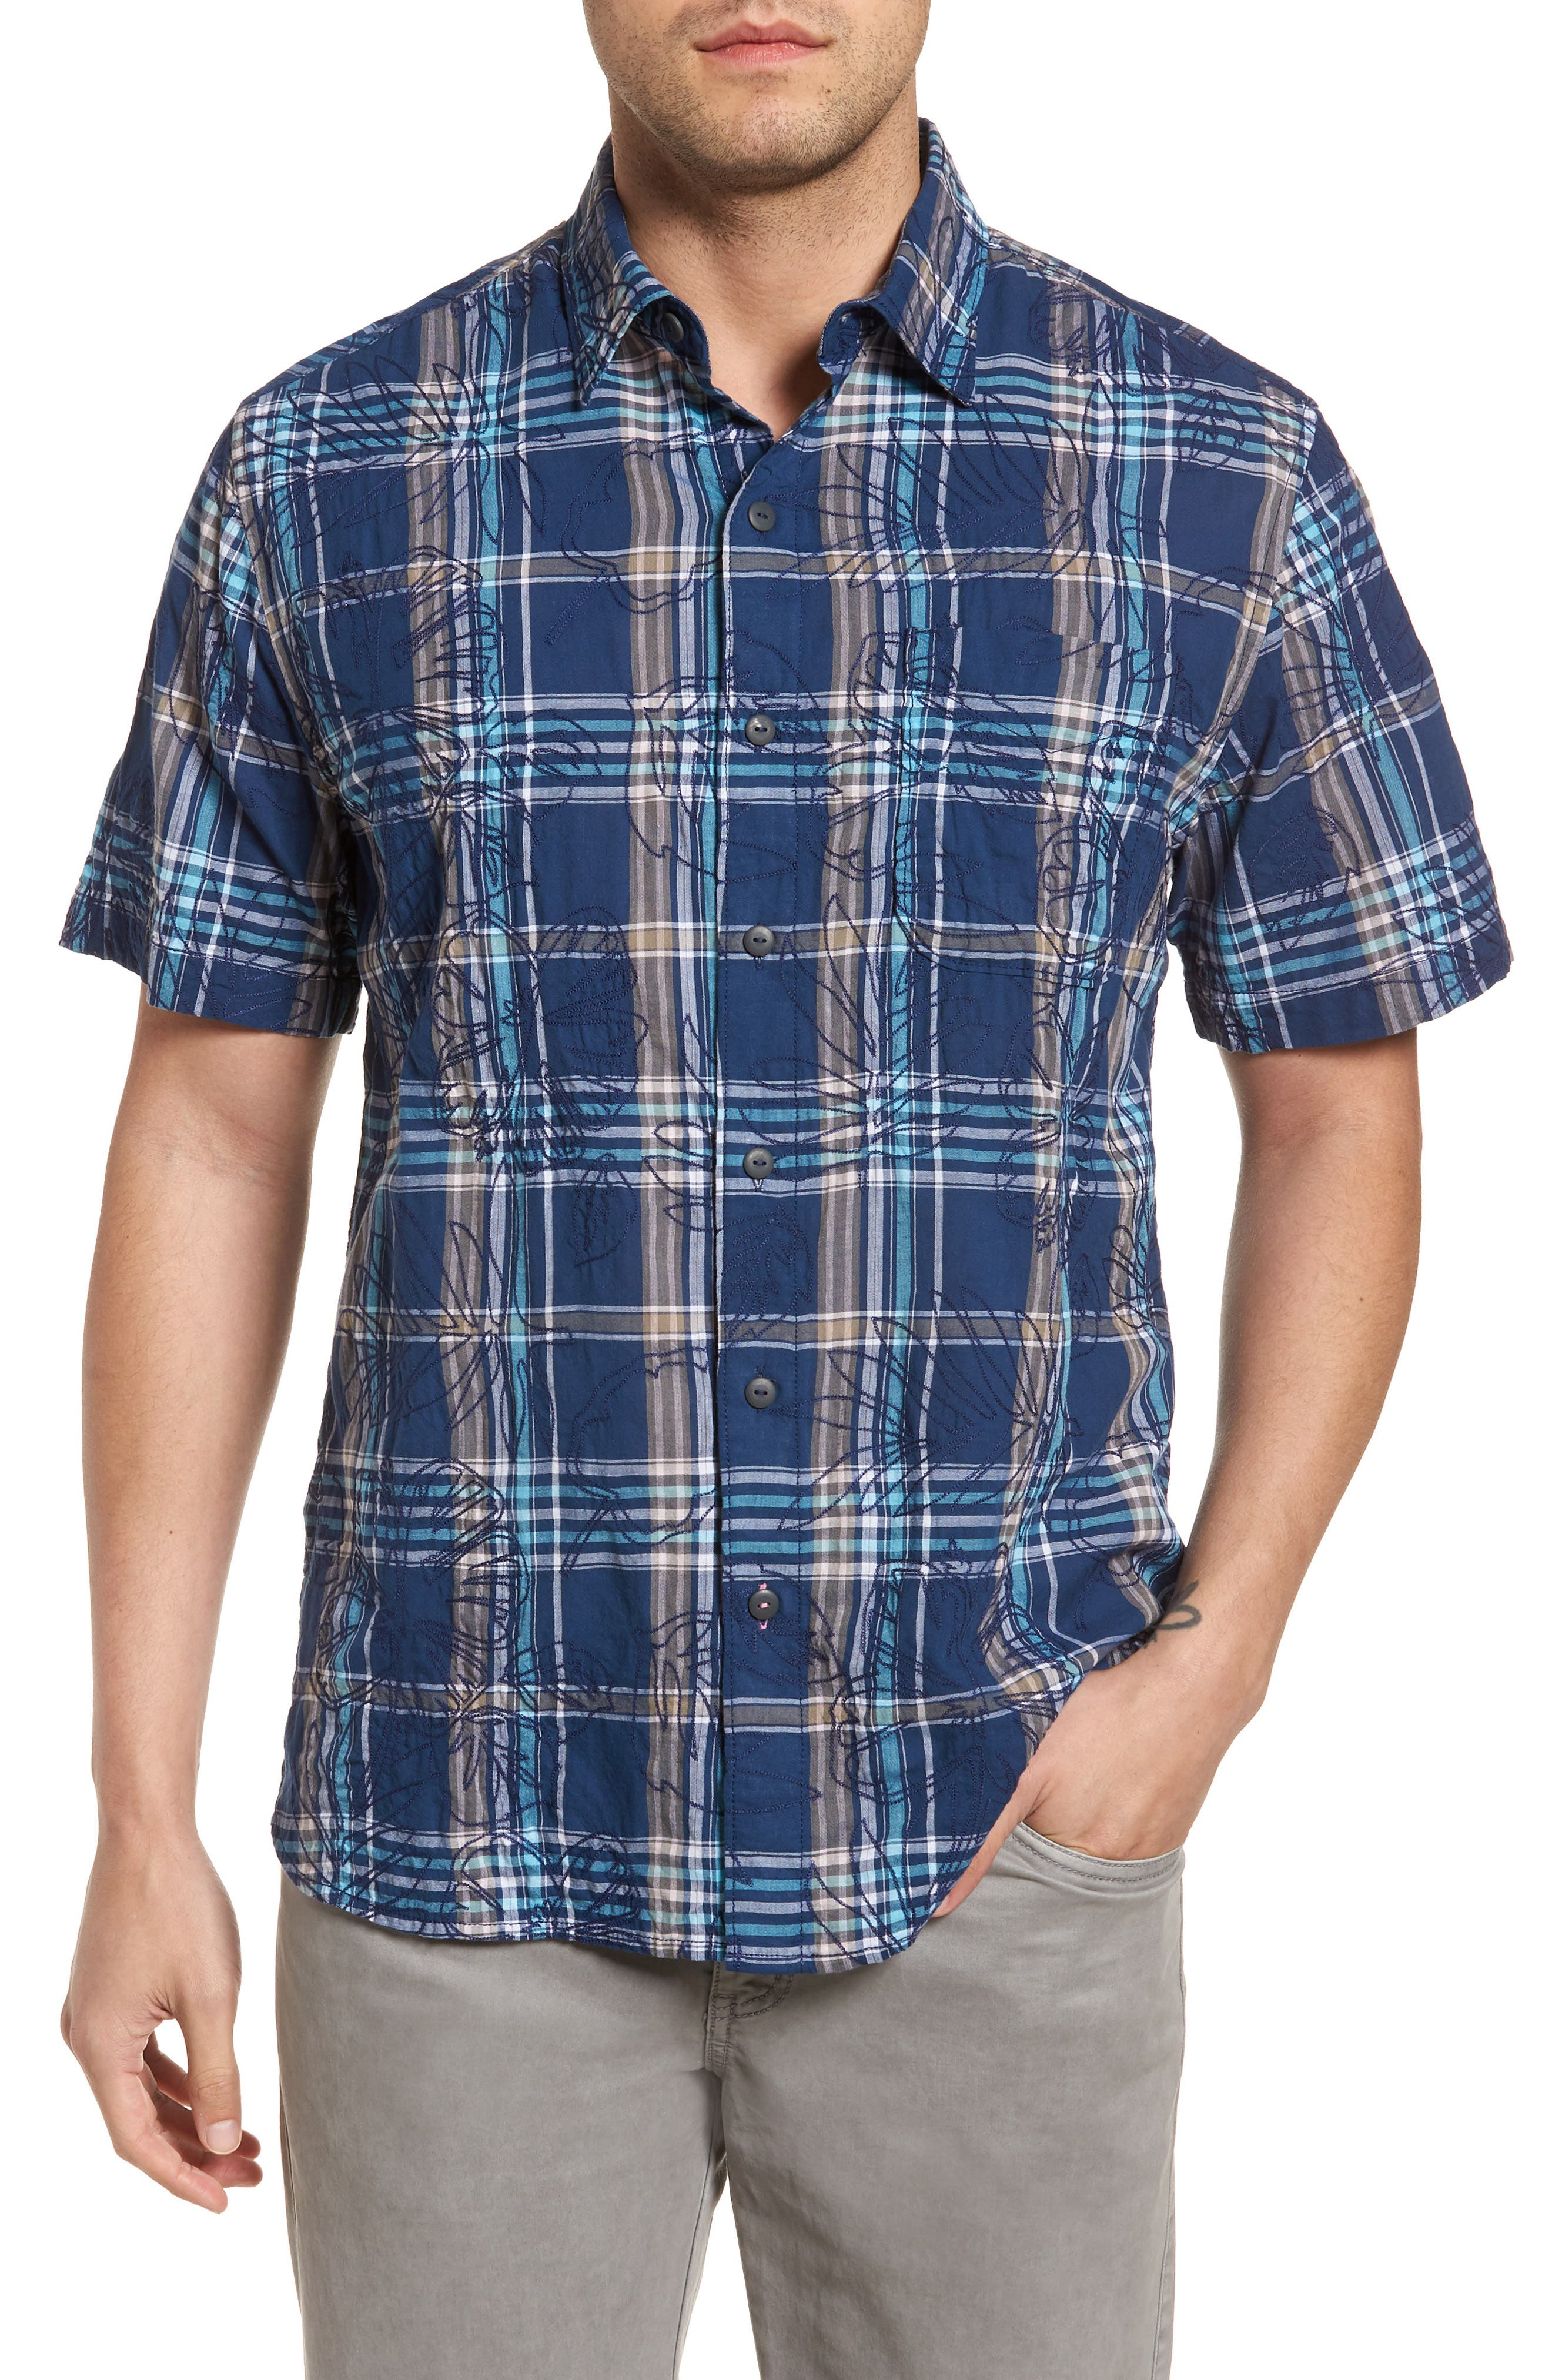 Palazzo Regular Fit Plaid Sport Shirt,                         Main,                         color, Dockside Blue